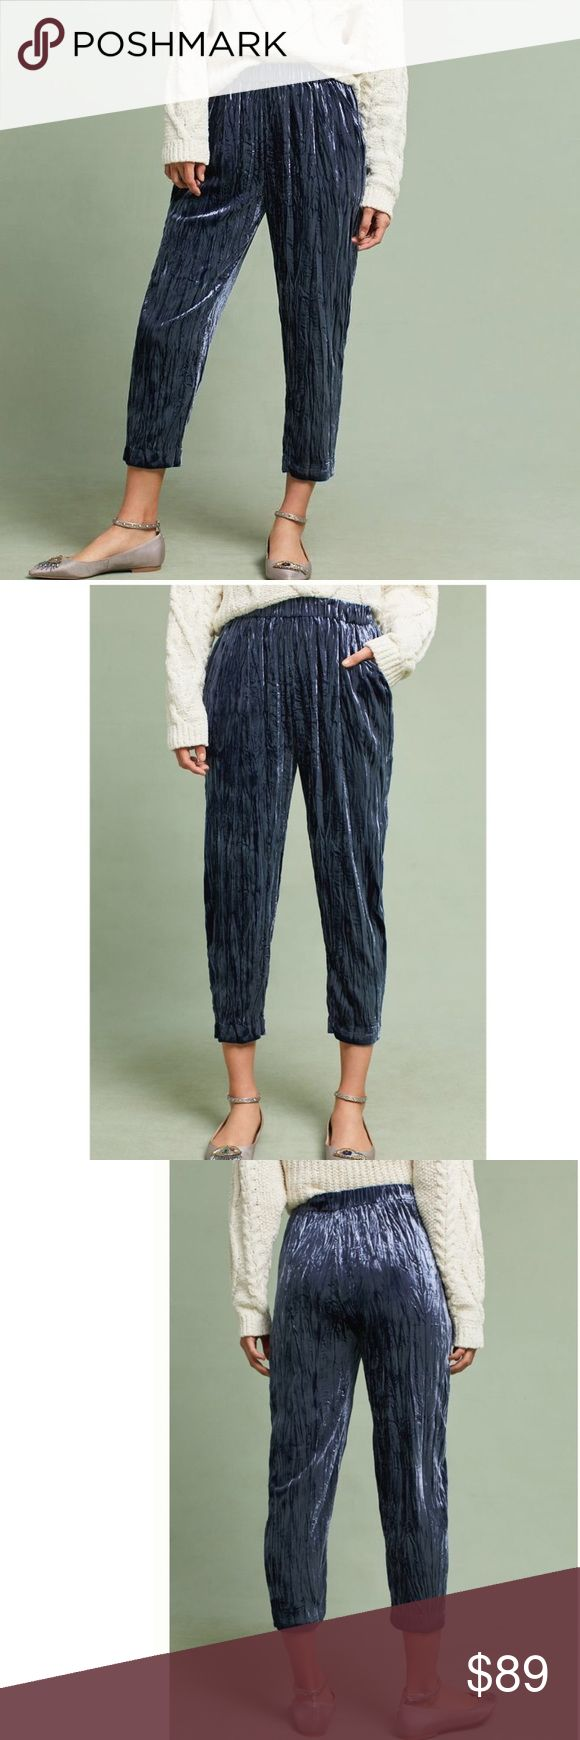 Anthropologie textured velvet jogger pants Brand new with tag. Elastic  waist. Waist 29